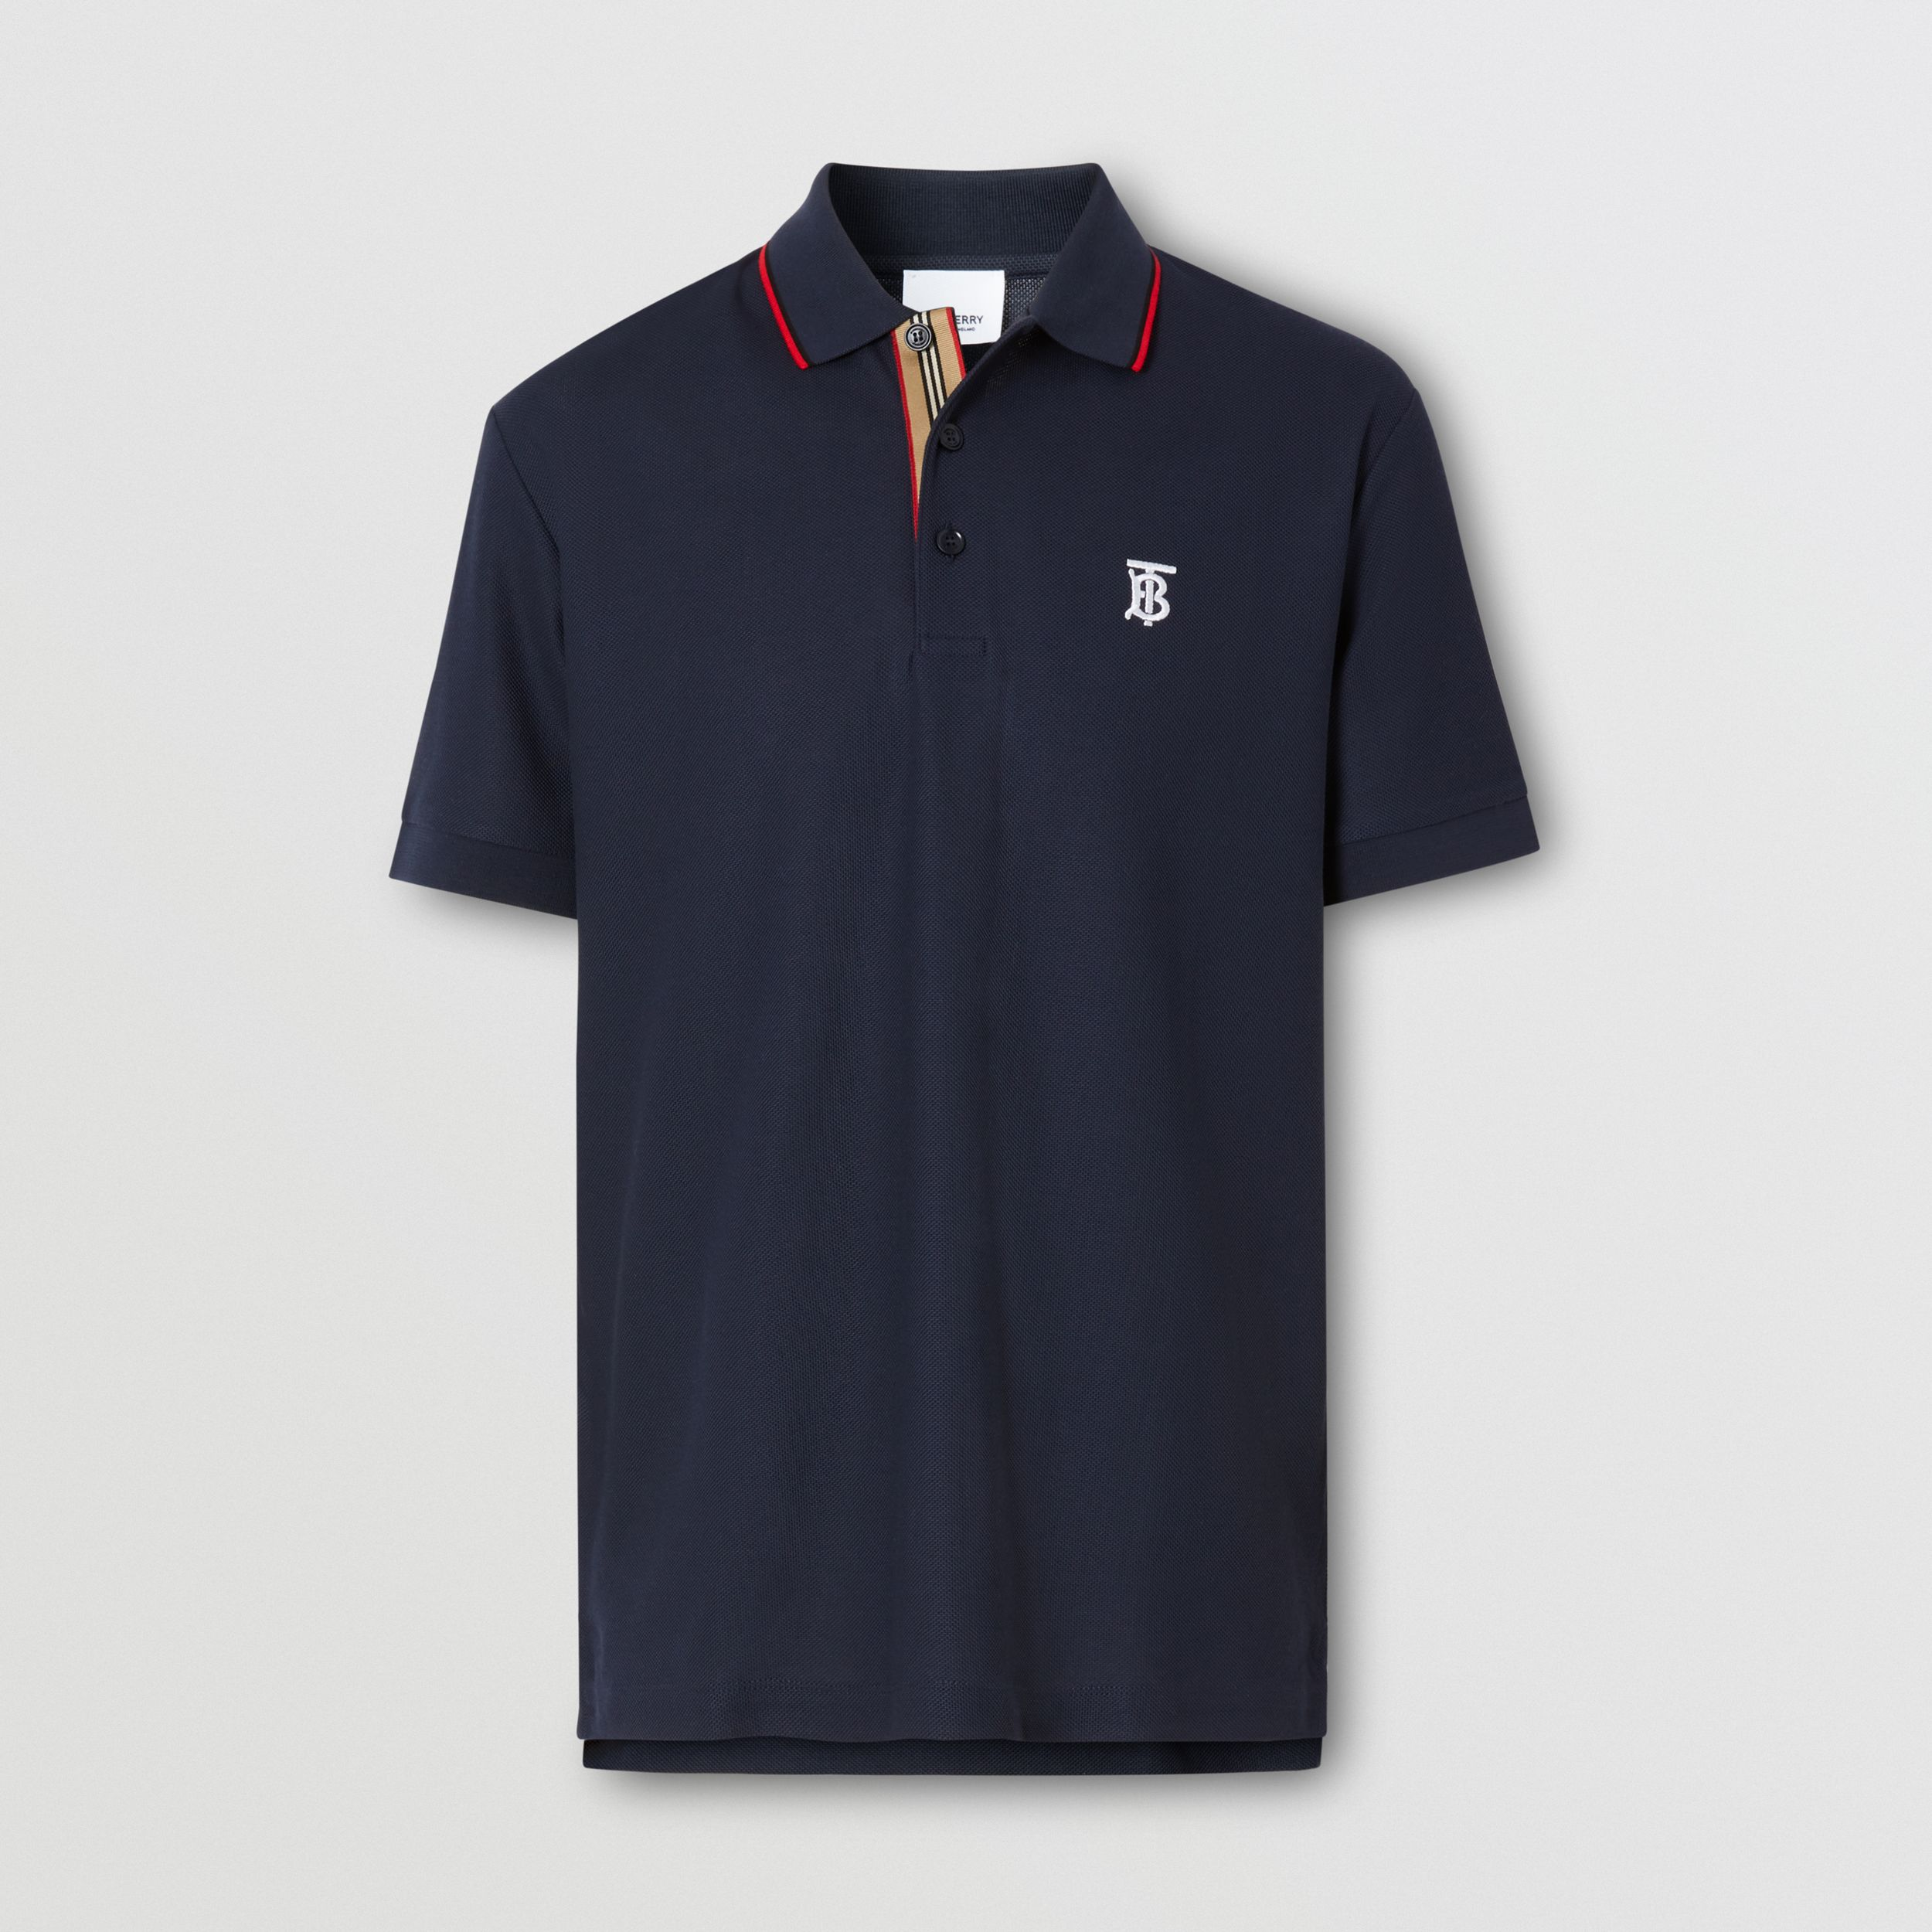 Icon Stripe Placket Cotton Piqué Polo Shirt in Navy - Men | Burberry Singapore - 4